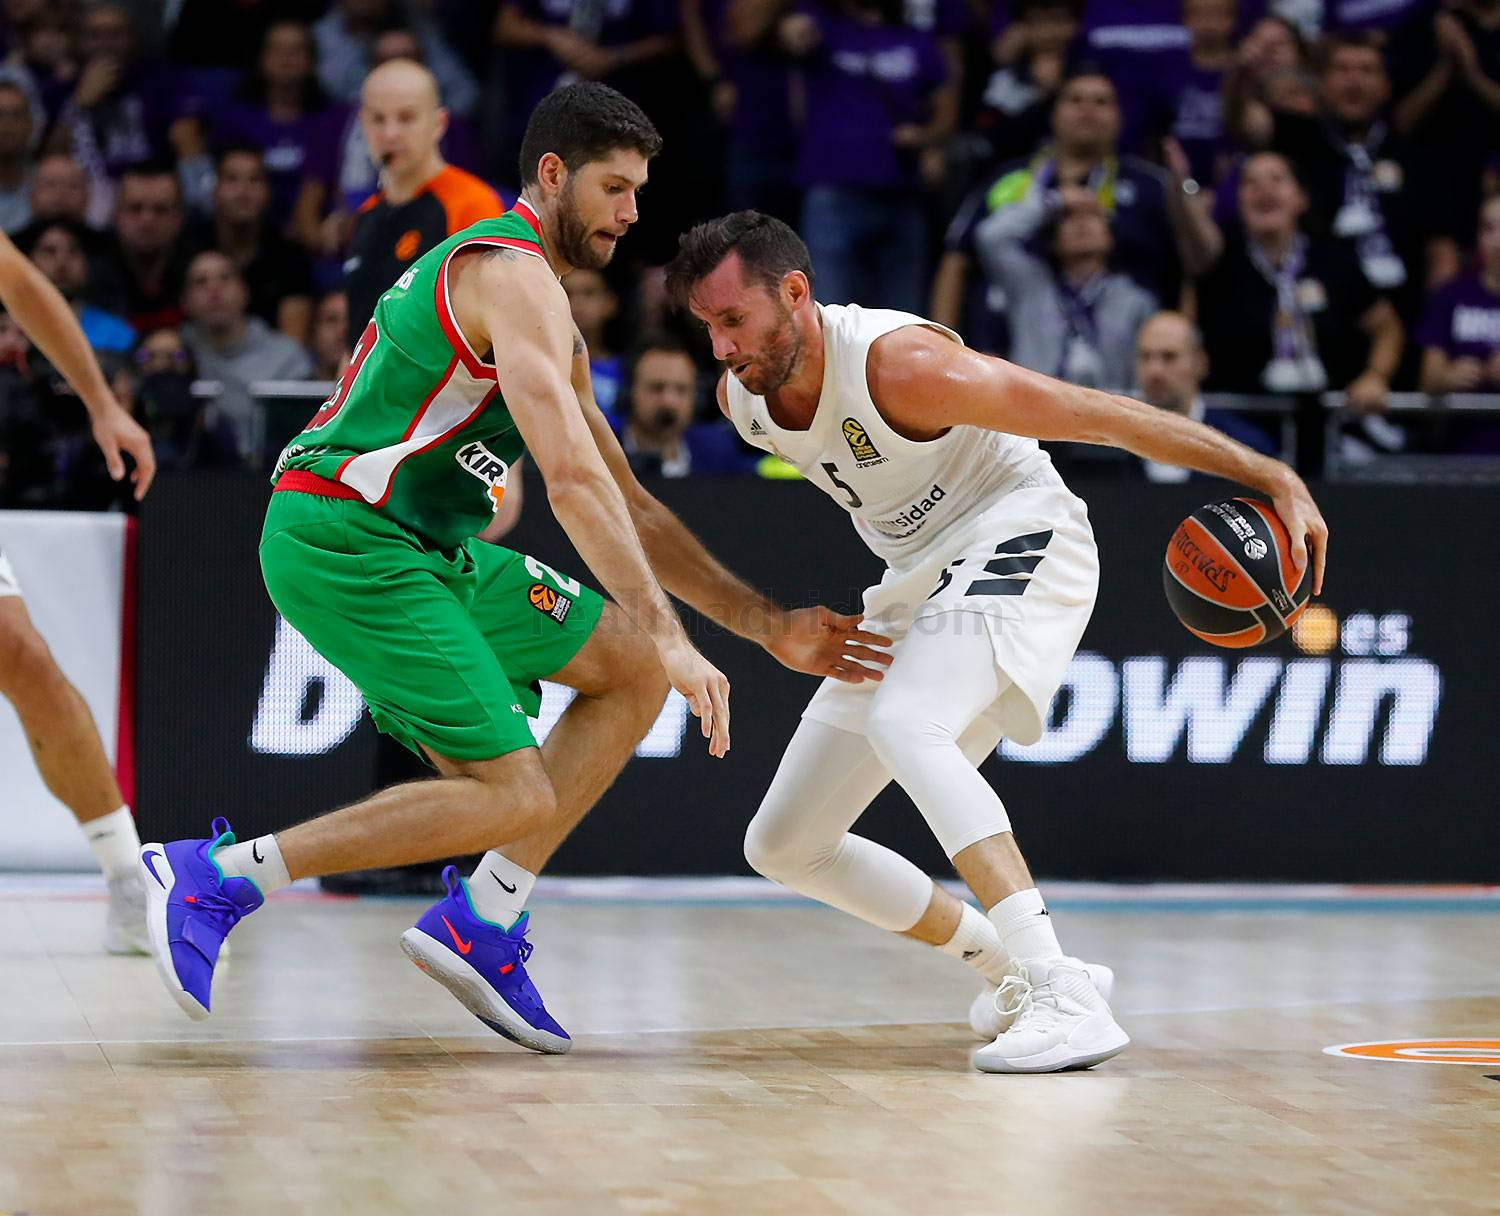 Real Madrid - Real Madrid - KIROLBET Baskonia - 19-10-2018